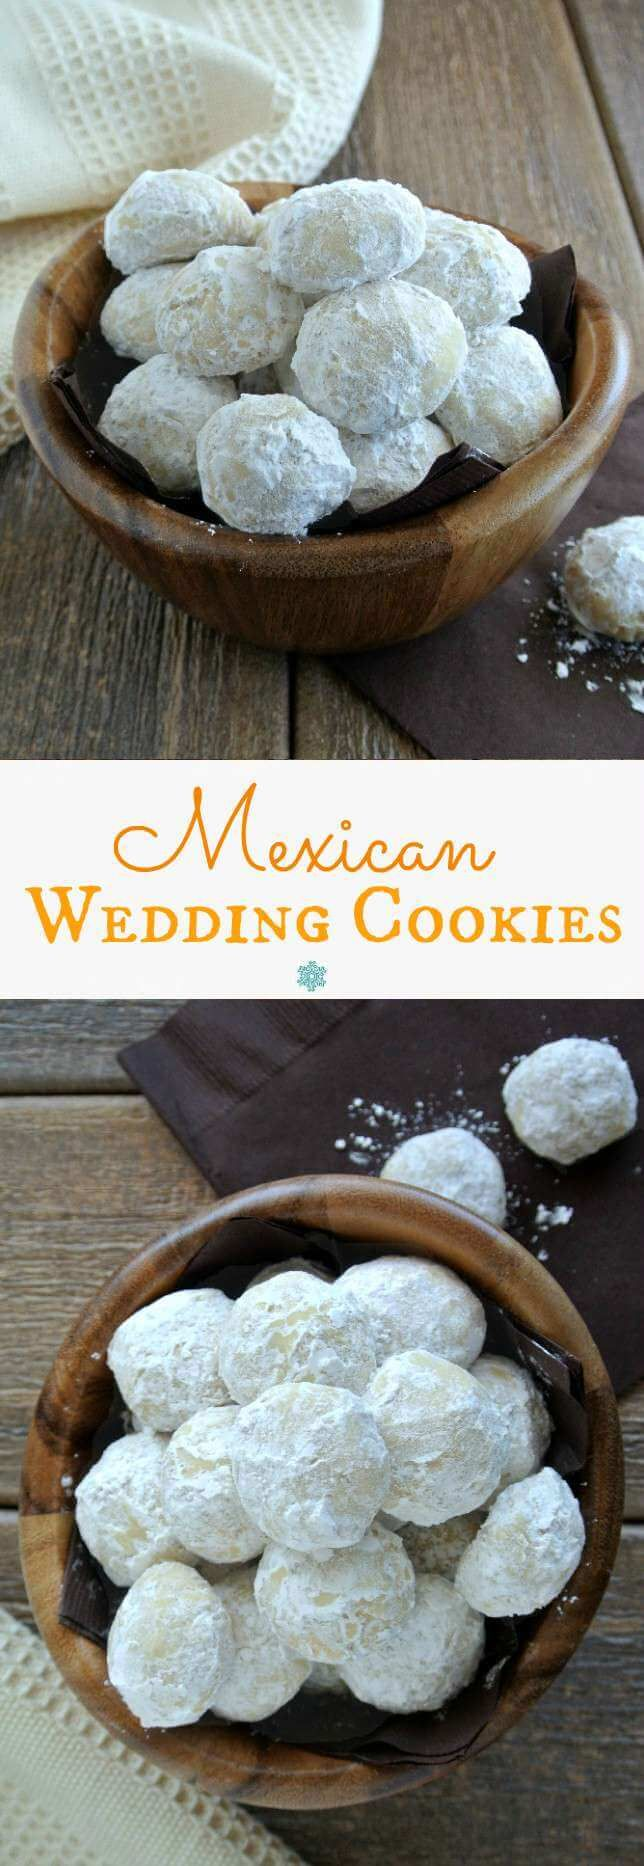 Mexican Wedding Cookies From Vegan In The Freezer Contain Almonds